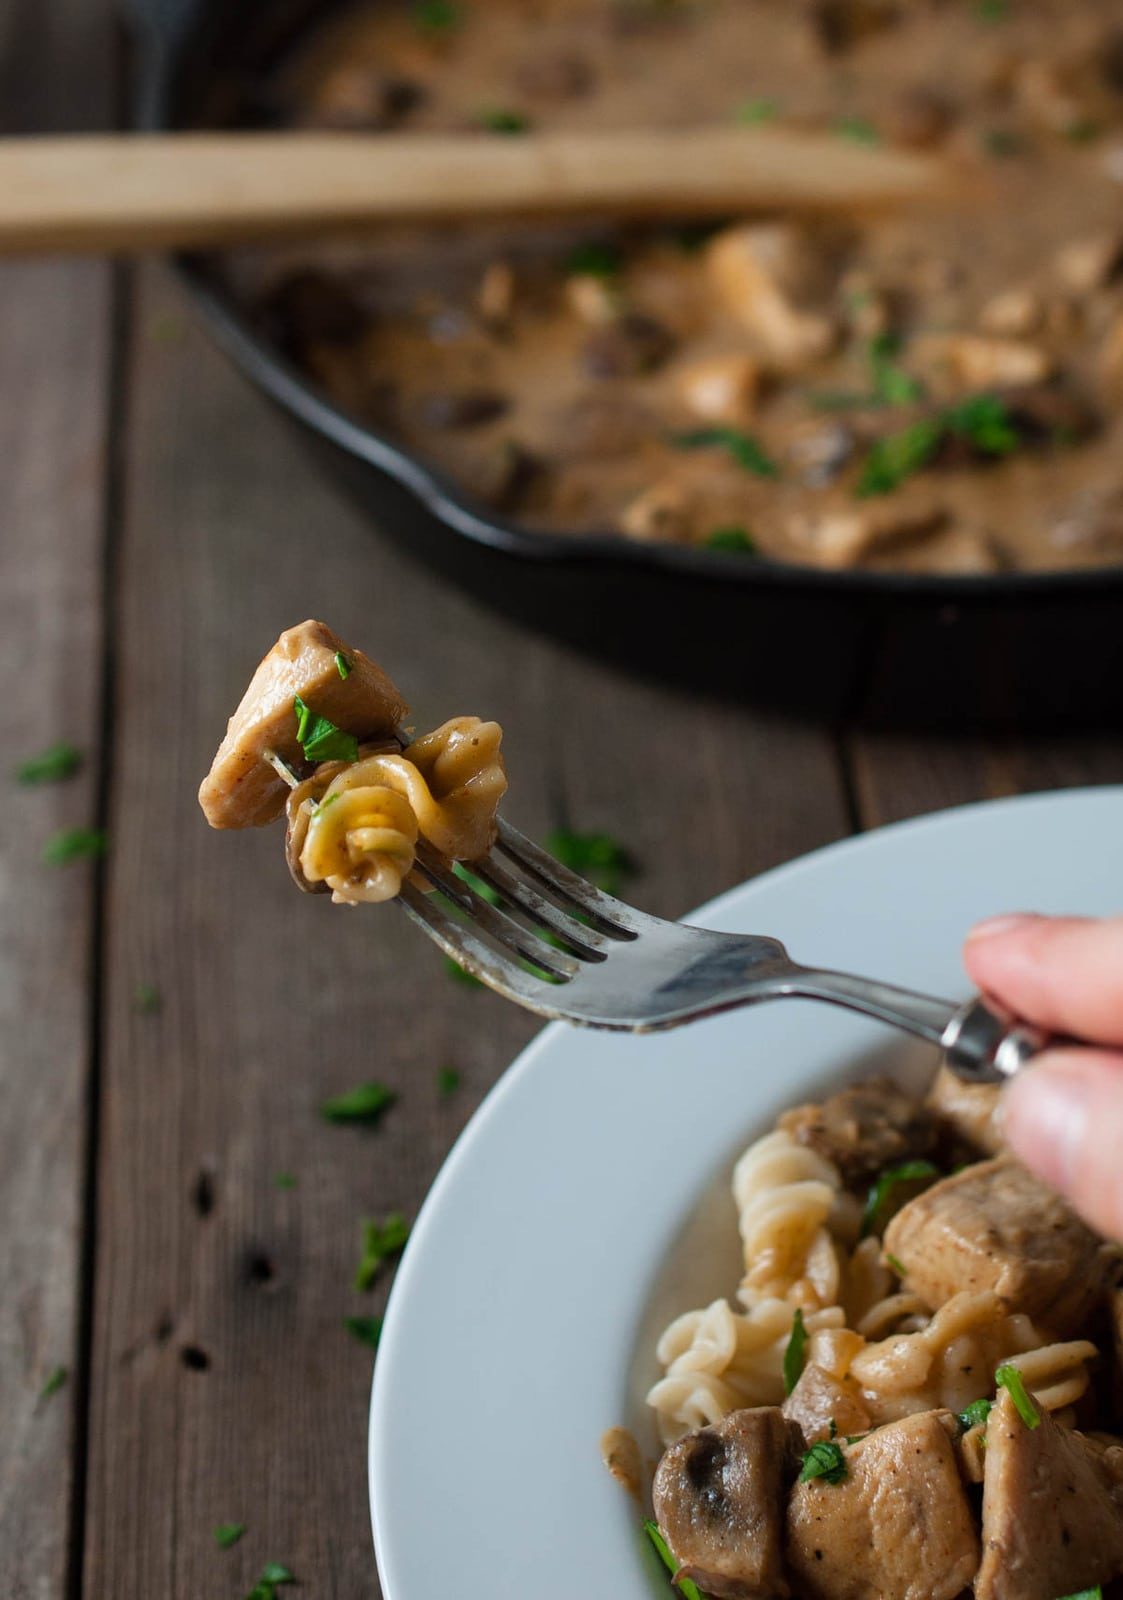 Creamy chicken stroganoff is comfort food that is easy enough for a weeknight dinner. This version is lightened up with mushrooms and brown rice noodles.